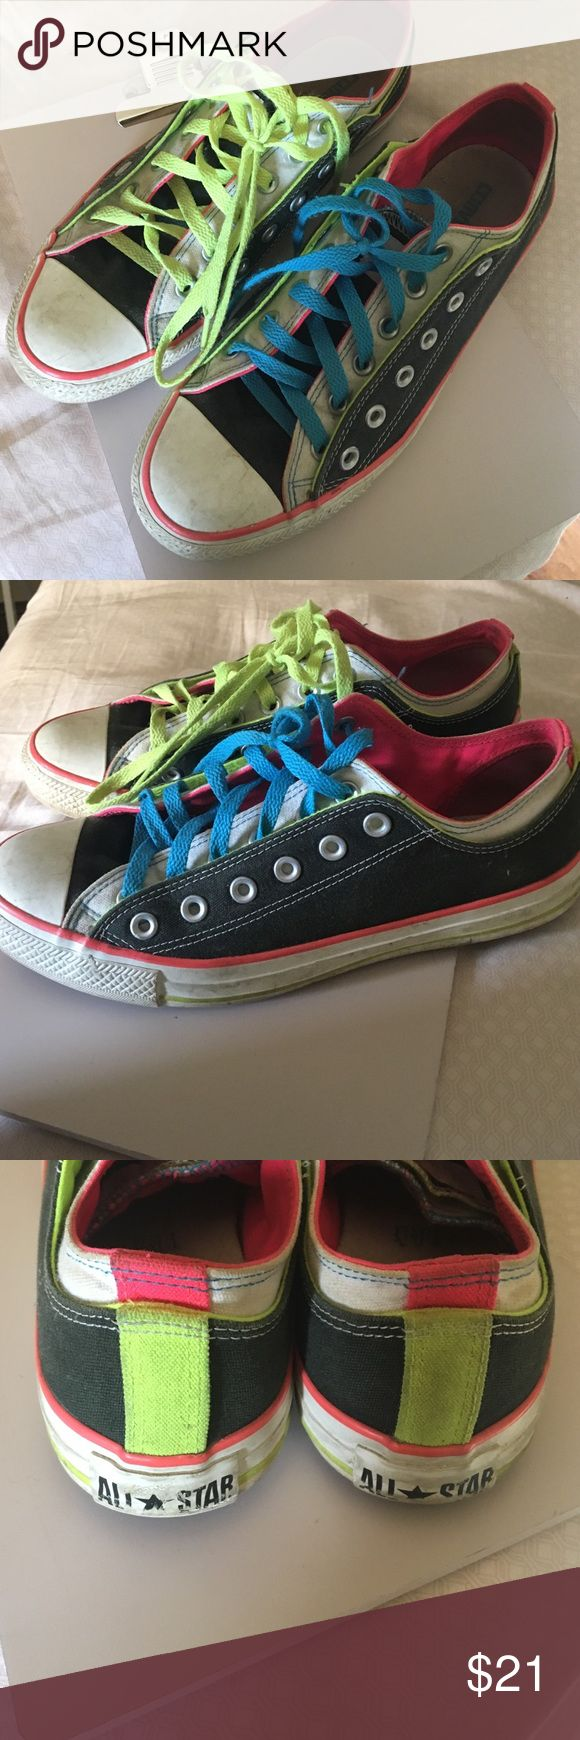 💜💚💗Neon converse lightly worn💗💚💜 WILL BE WASHED BEFORE SENT OUT. Love them but they don't fit anymore! Converse Shoes Sneakers